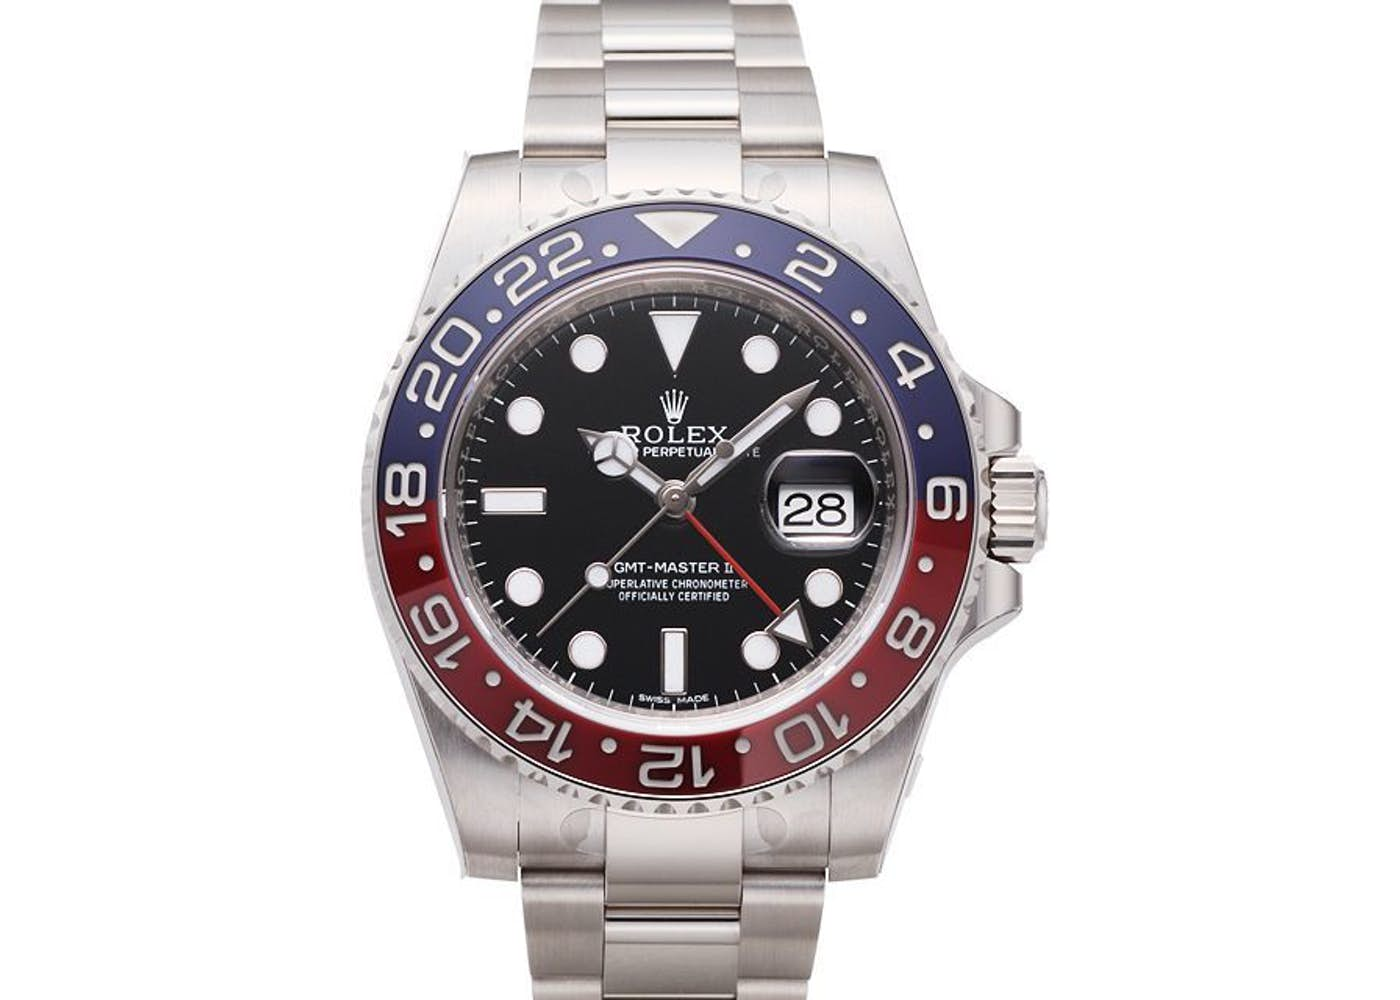 Rolex gmt master ii pepsi in oystersteel at baselworld 2018 for Rolex gmt master